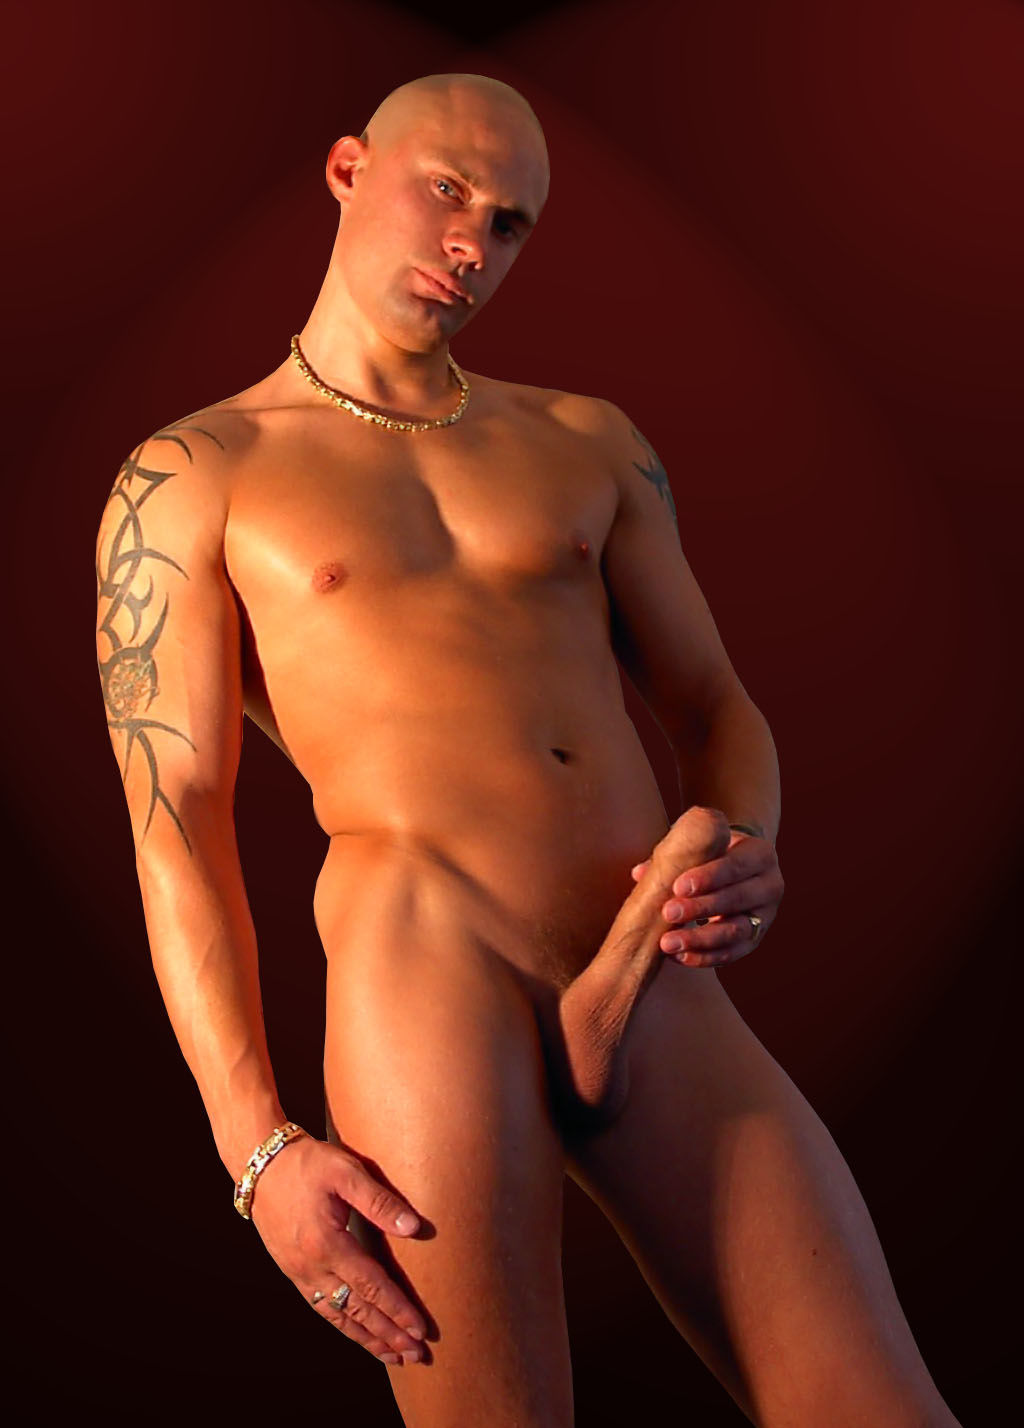 gay videos moscow independent escort